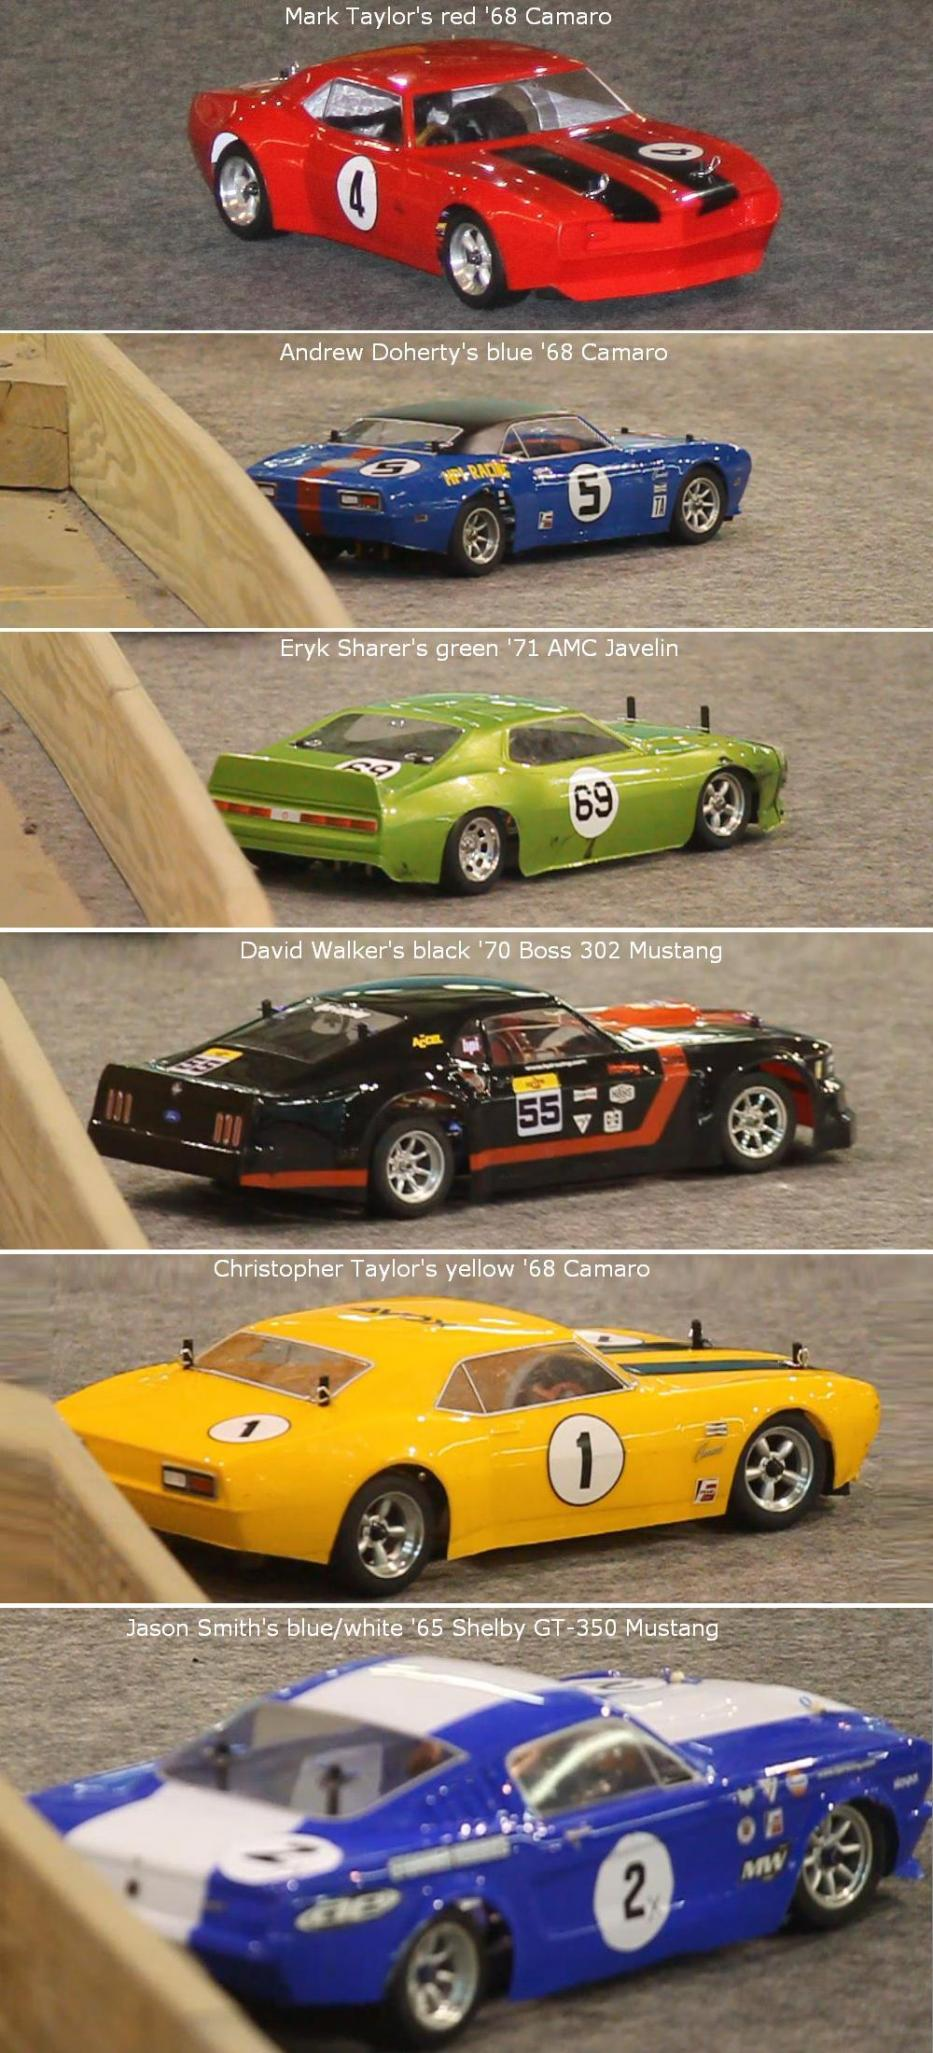 There were 6 racers at Mike's